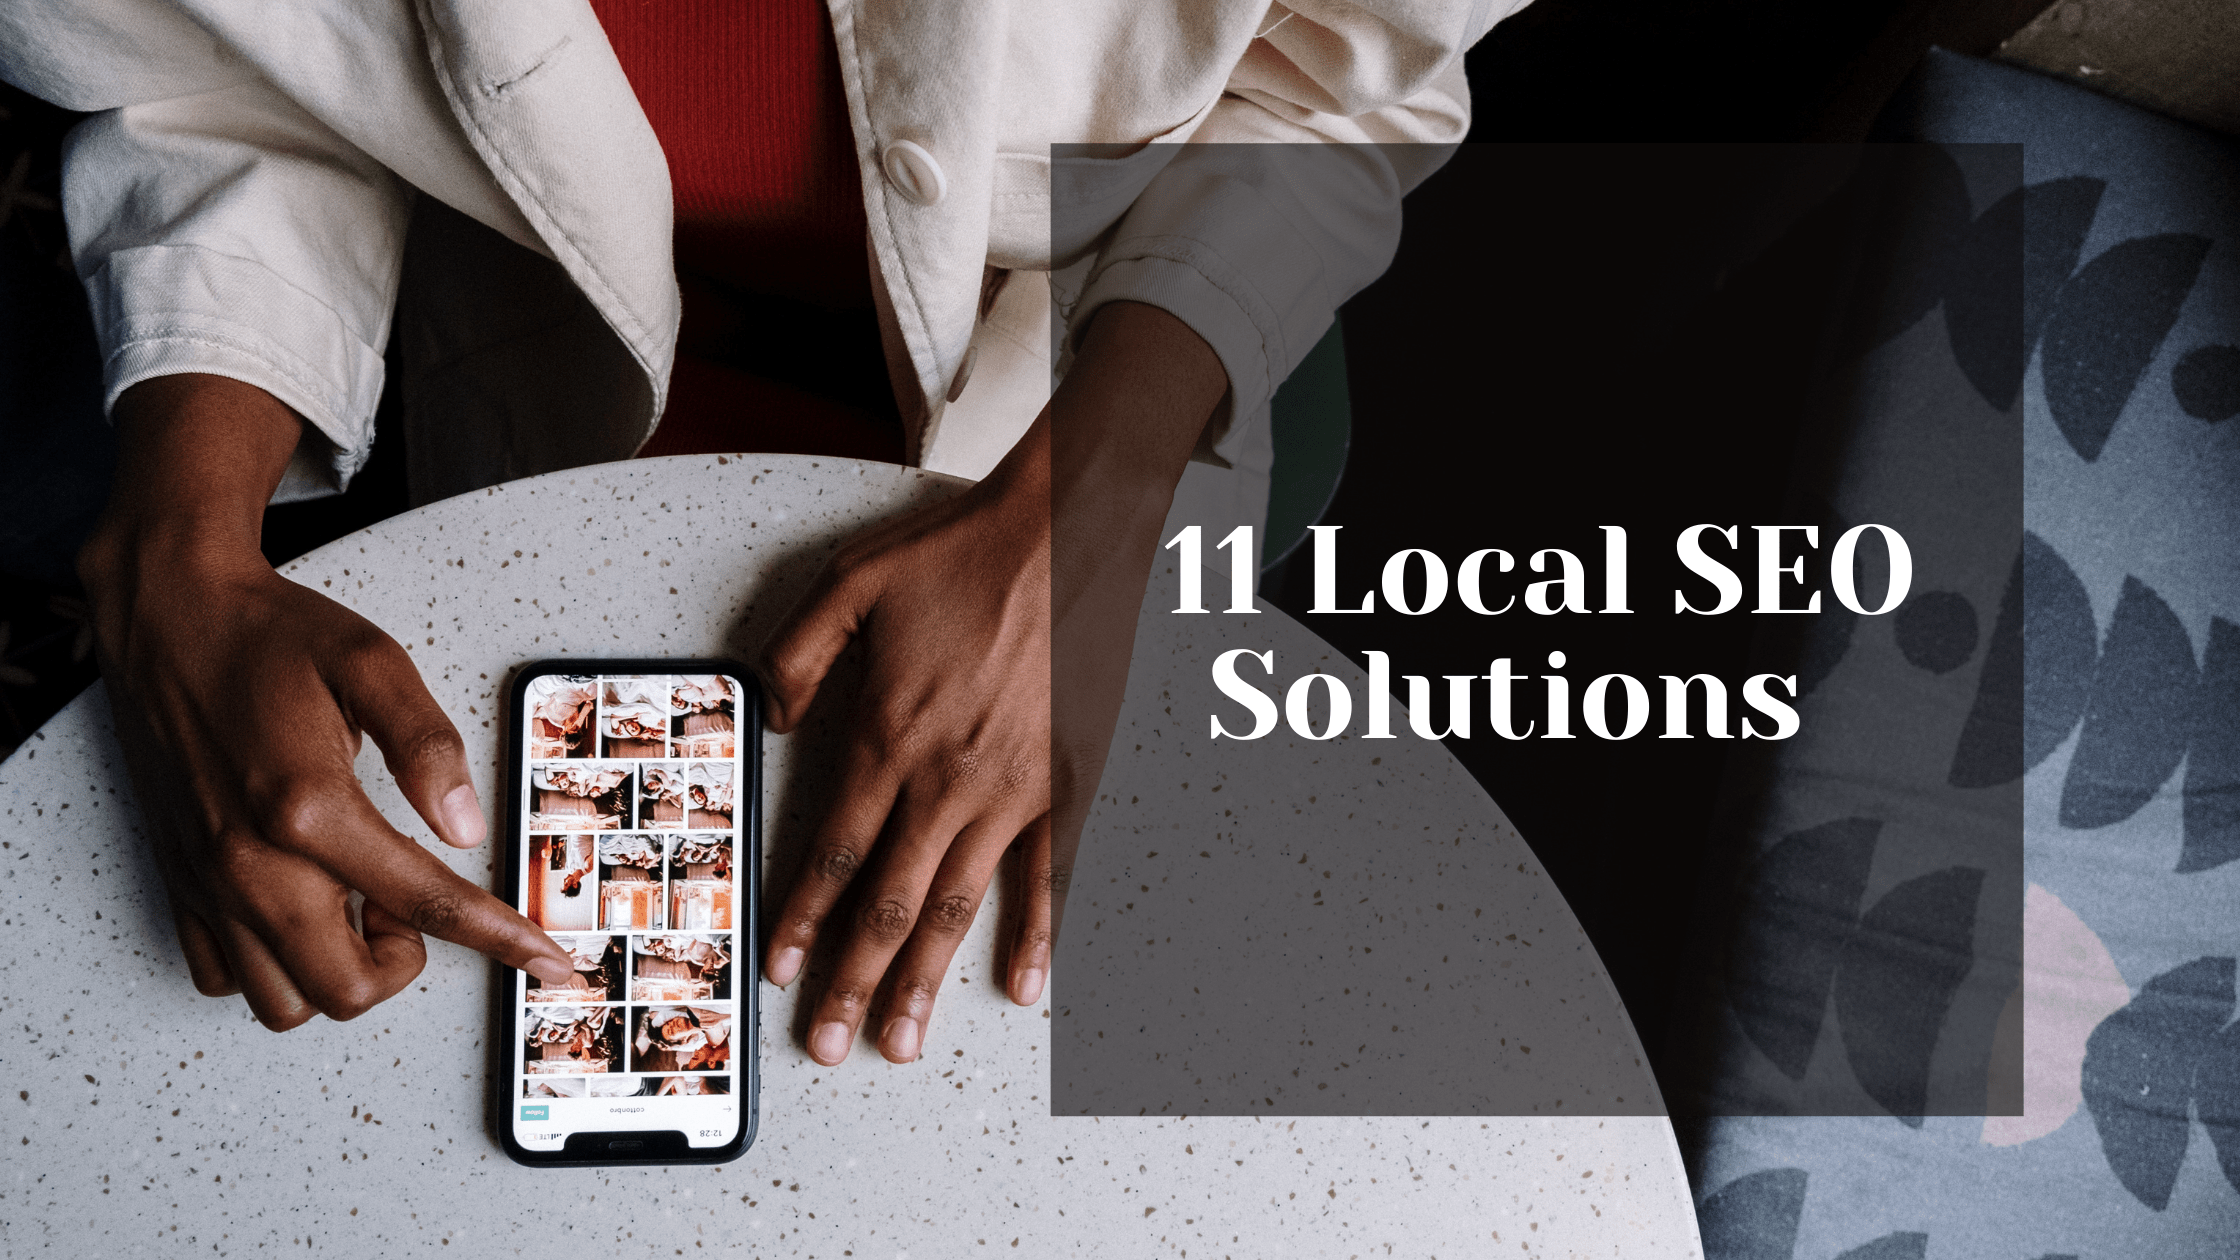 11 Local SEO Solutions to Help You Outrank Your Competitors